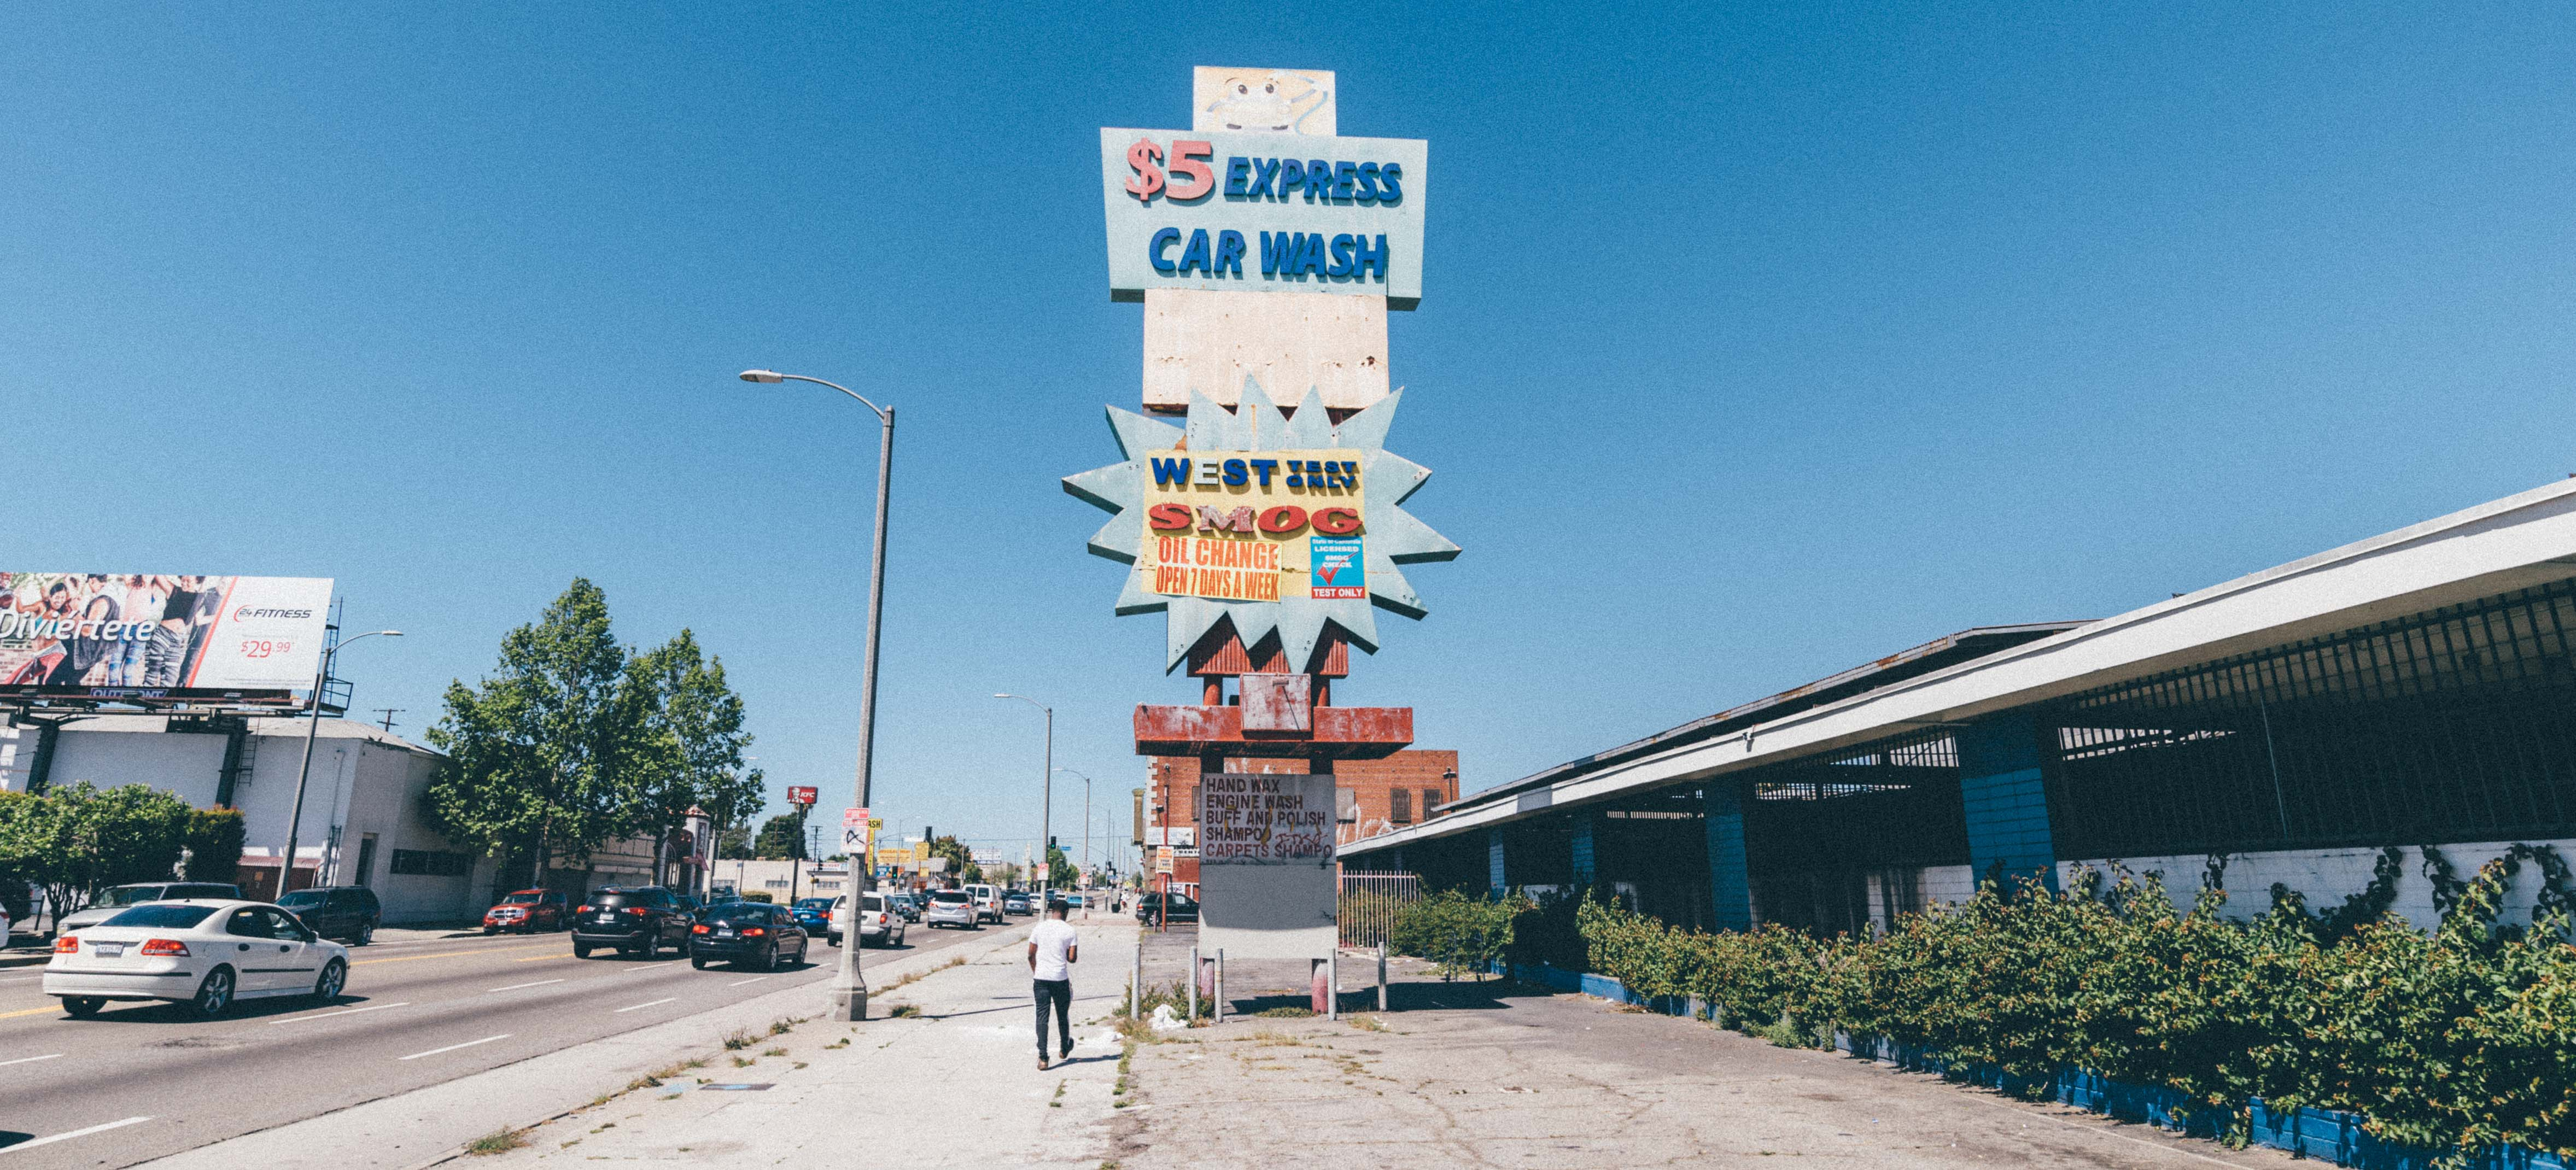 You don't see too many closed car washes in L.A. This one is on Manchester Boulevard in South L.A. Photo by Steve Hymon.